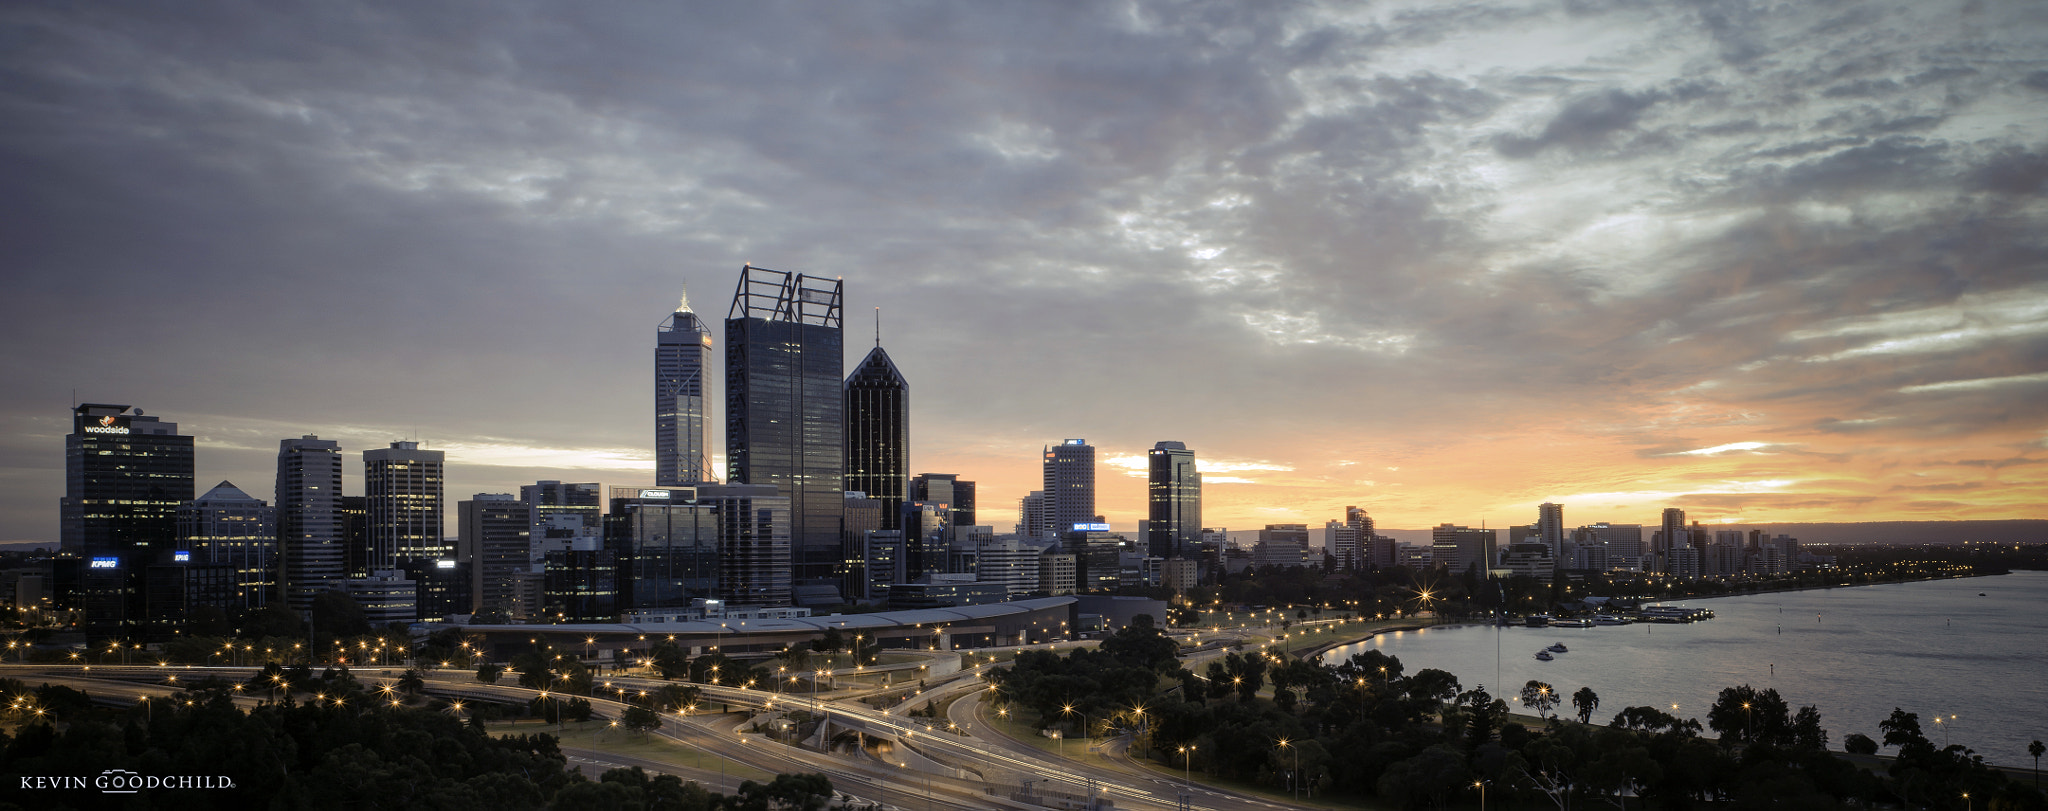 Photograph Perth City Sunrise by Kevin Goodchild on 500px